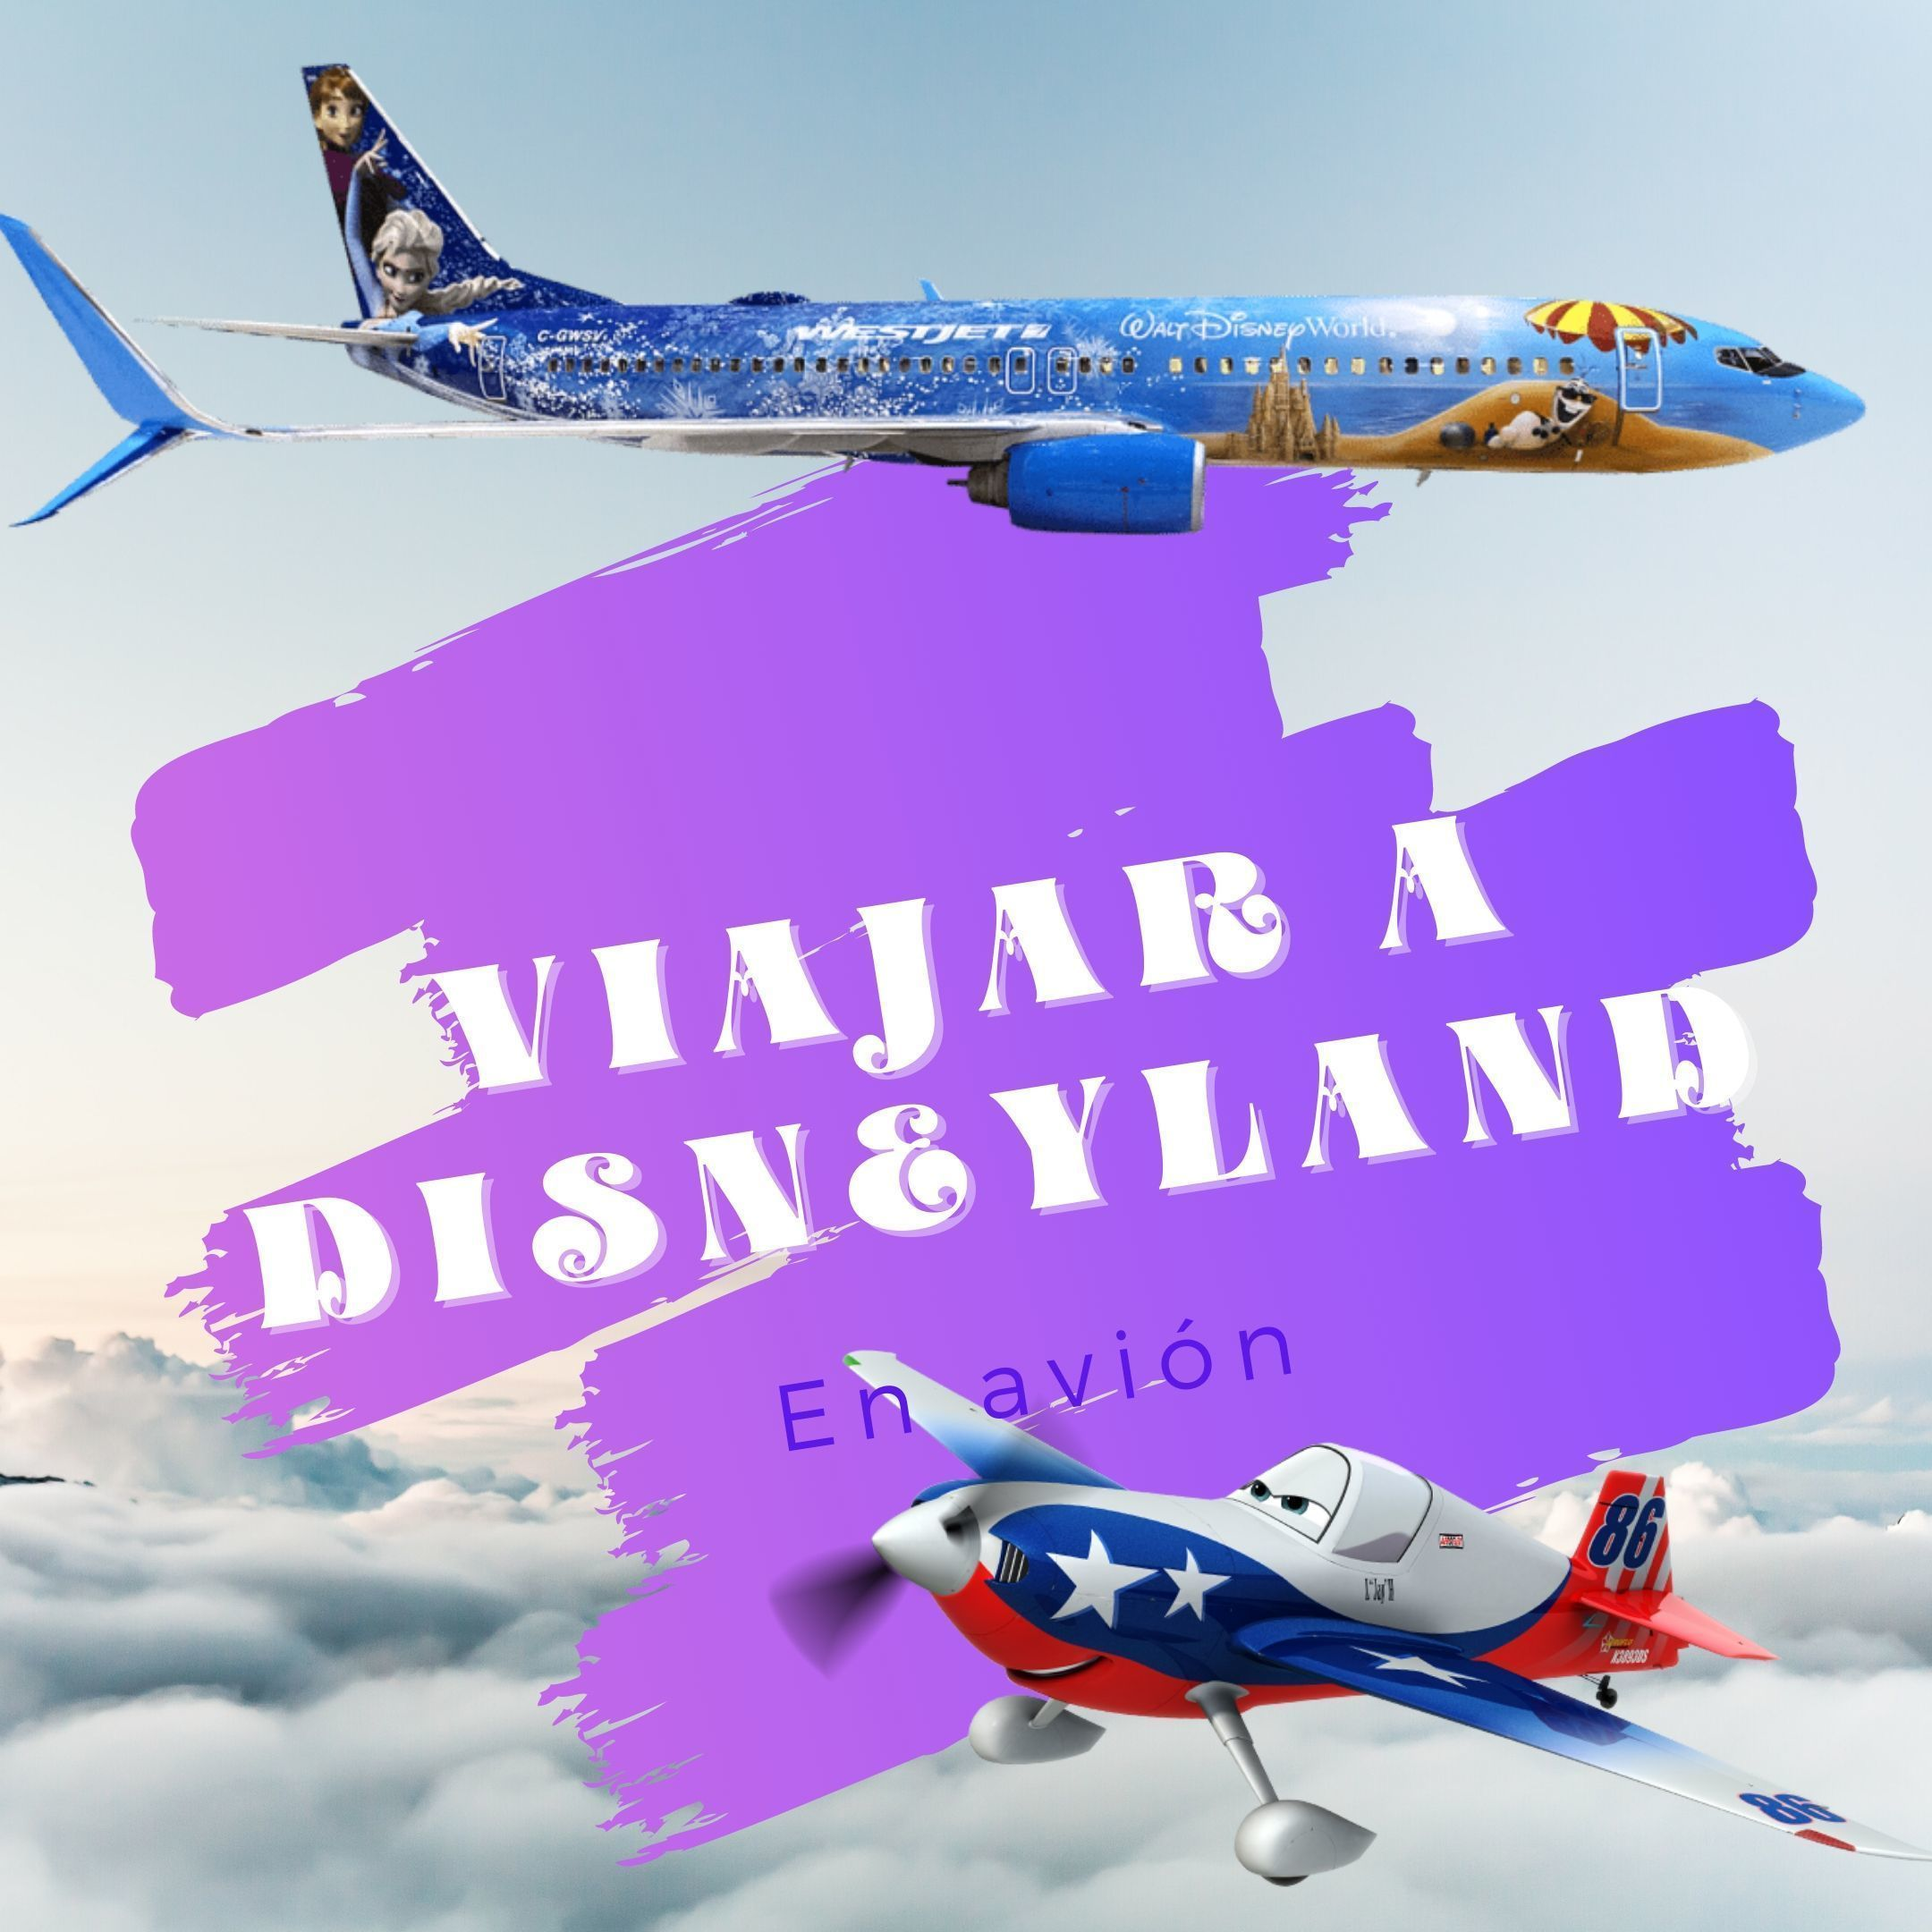 Como-viajar-a-disneyland-paris-en-avion